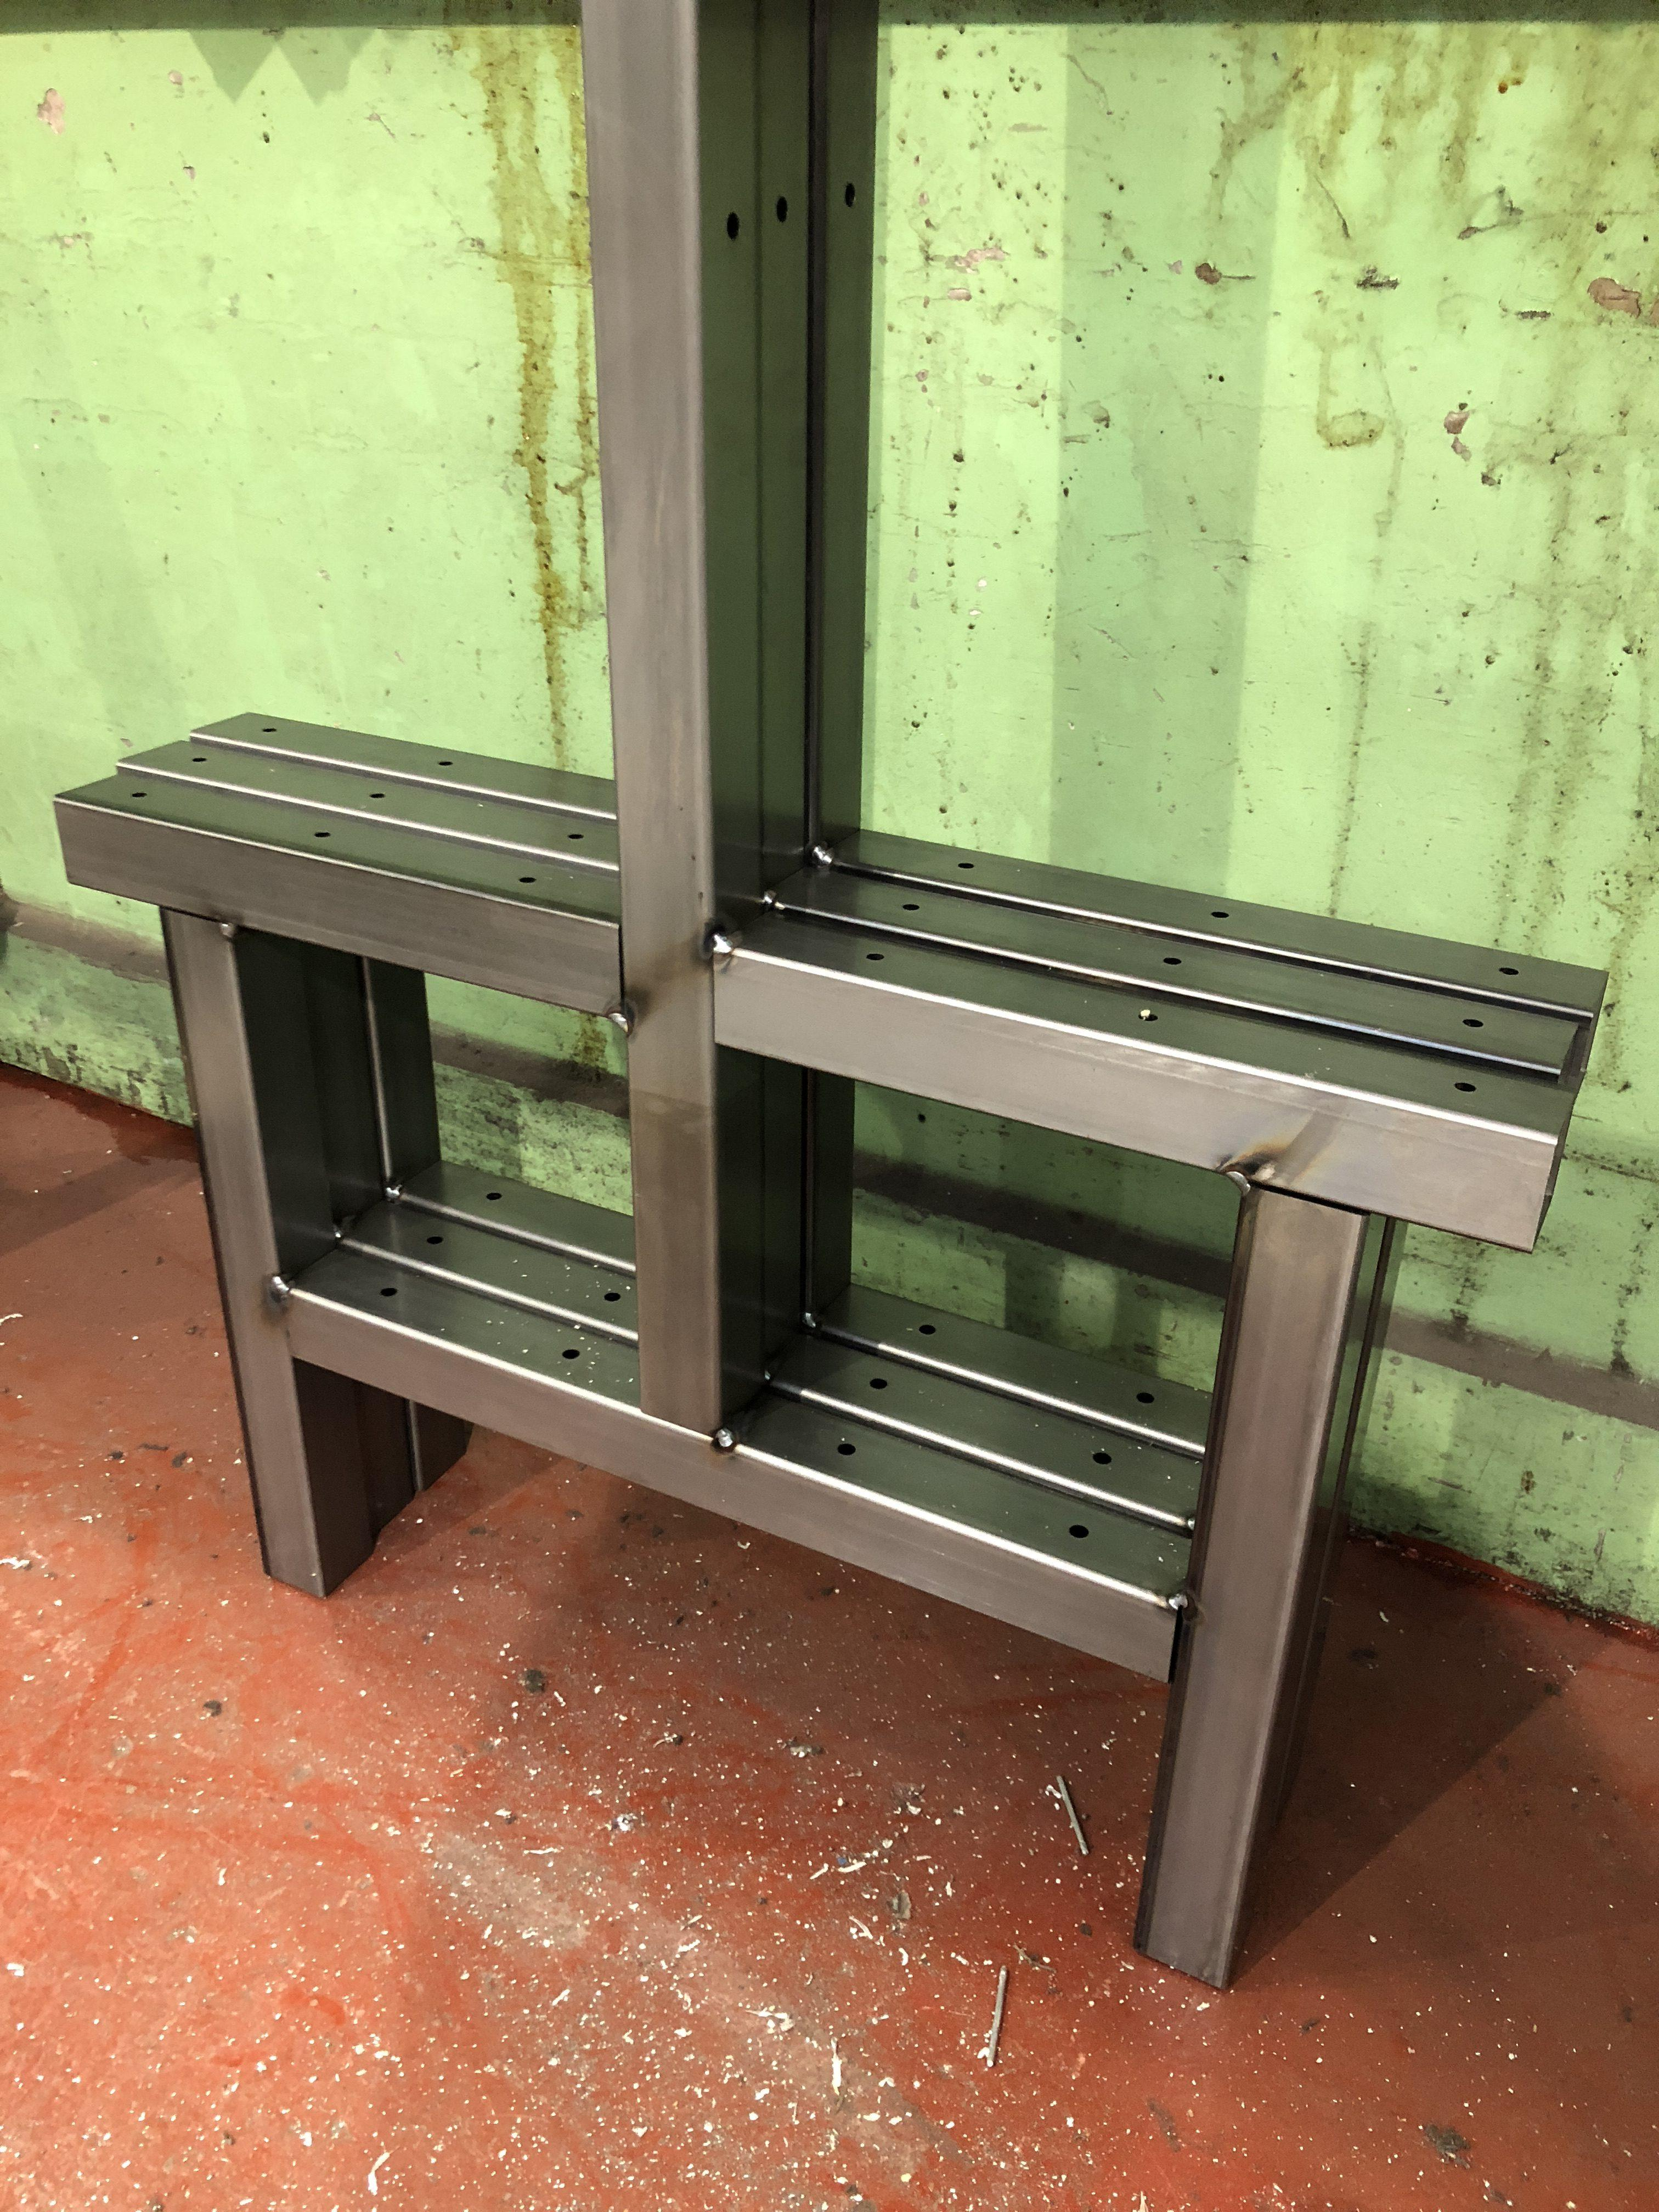 Component from welding and fabrication